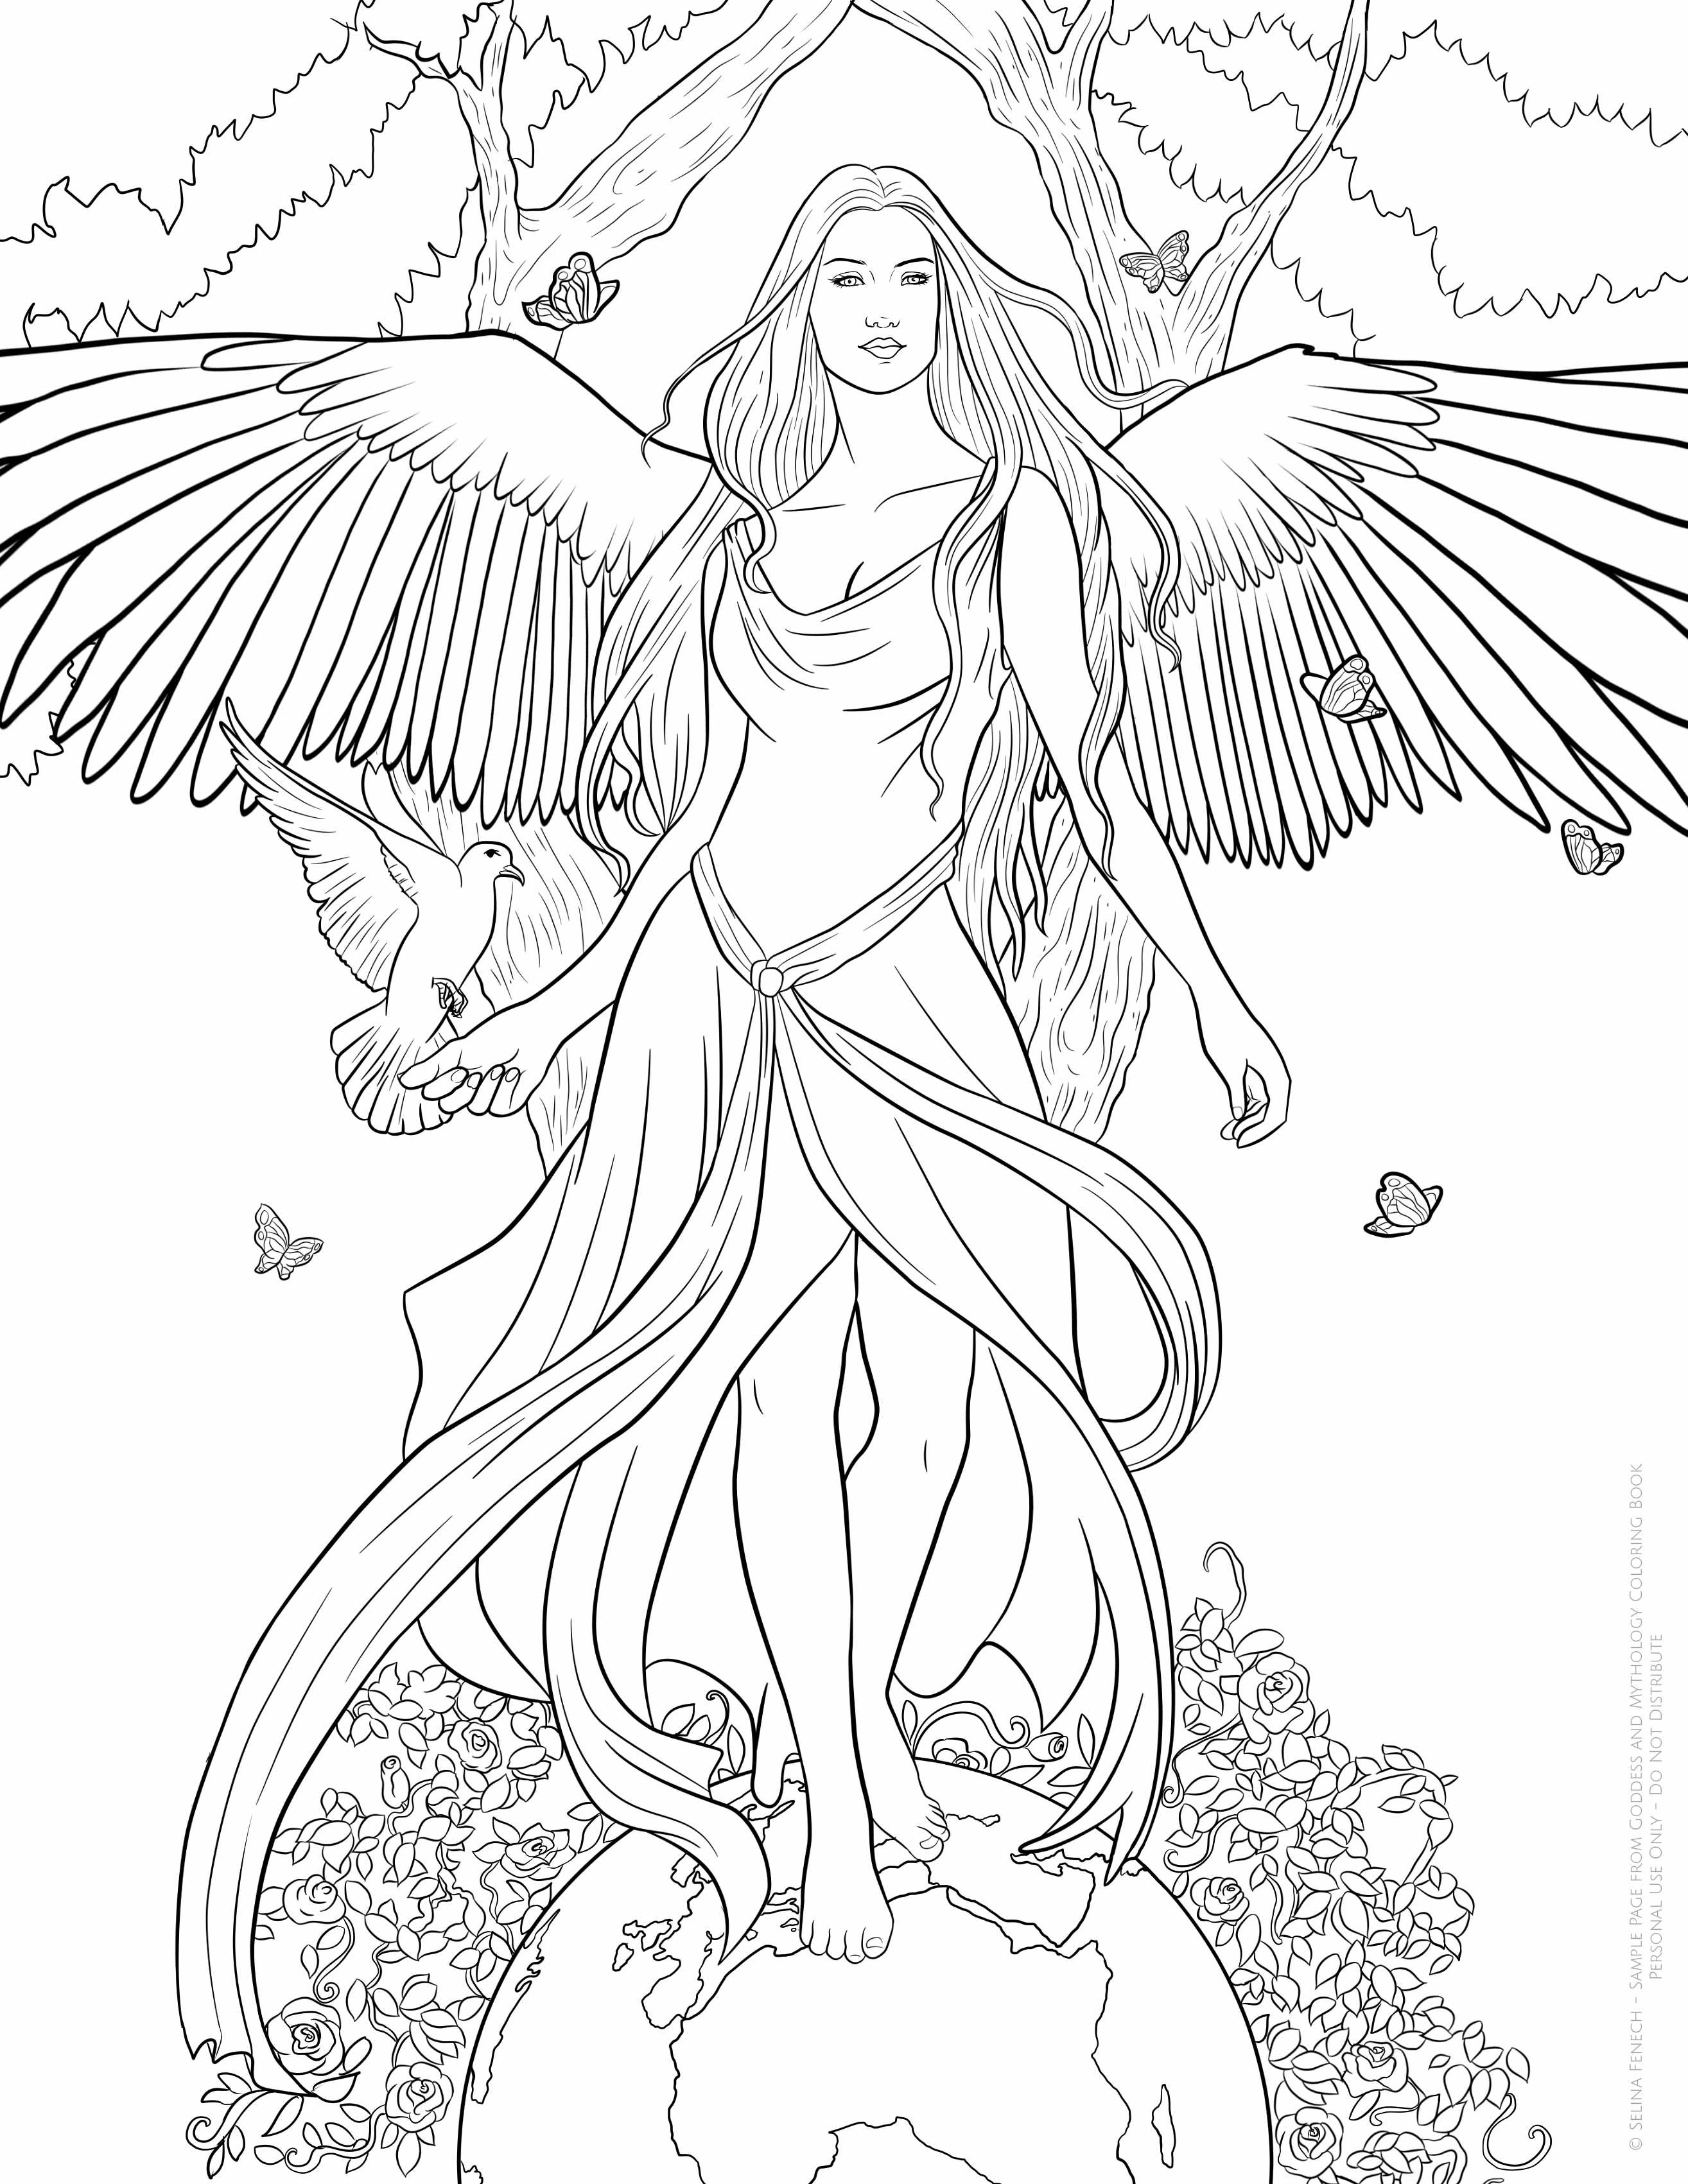 Pin By Erica Nicole On Para Colorir Angel Coloring Pages Fantasy Coloring Pages Fairy Coloring Pages